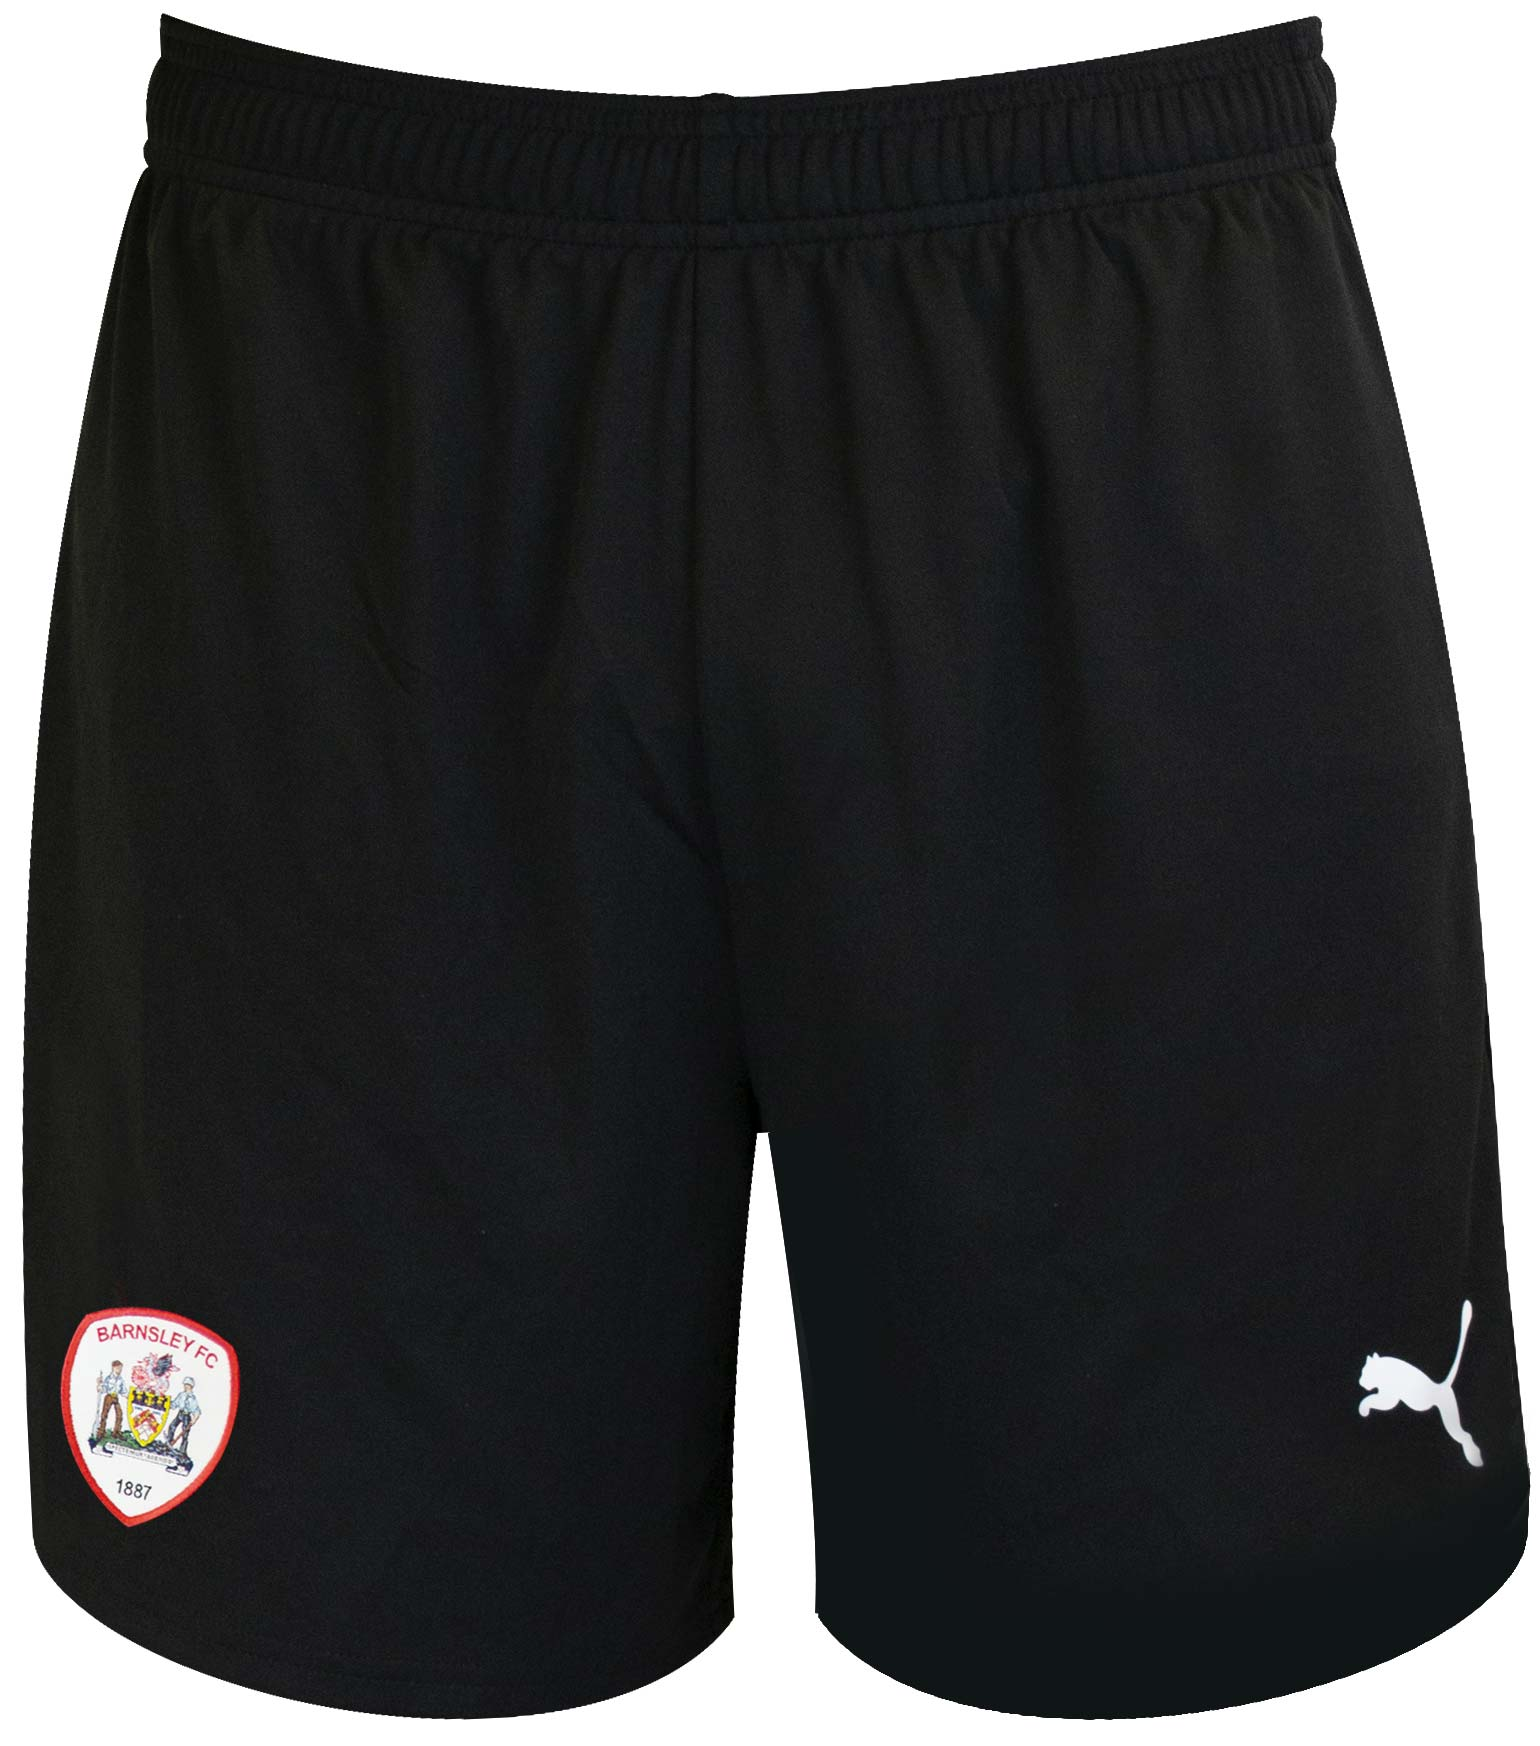 Puma Adult Away Short 18-19